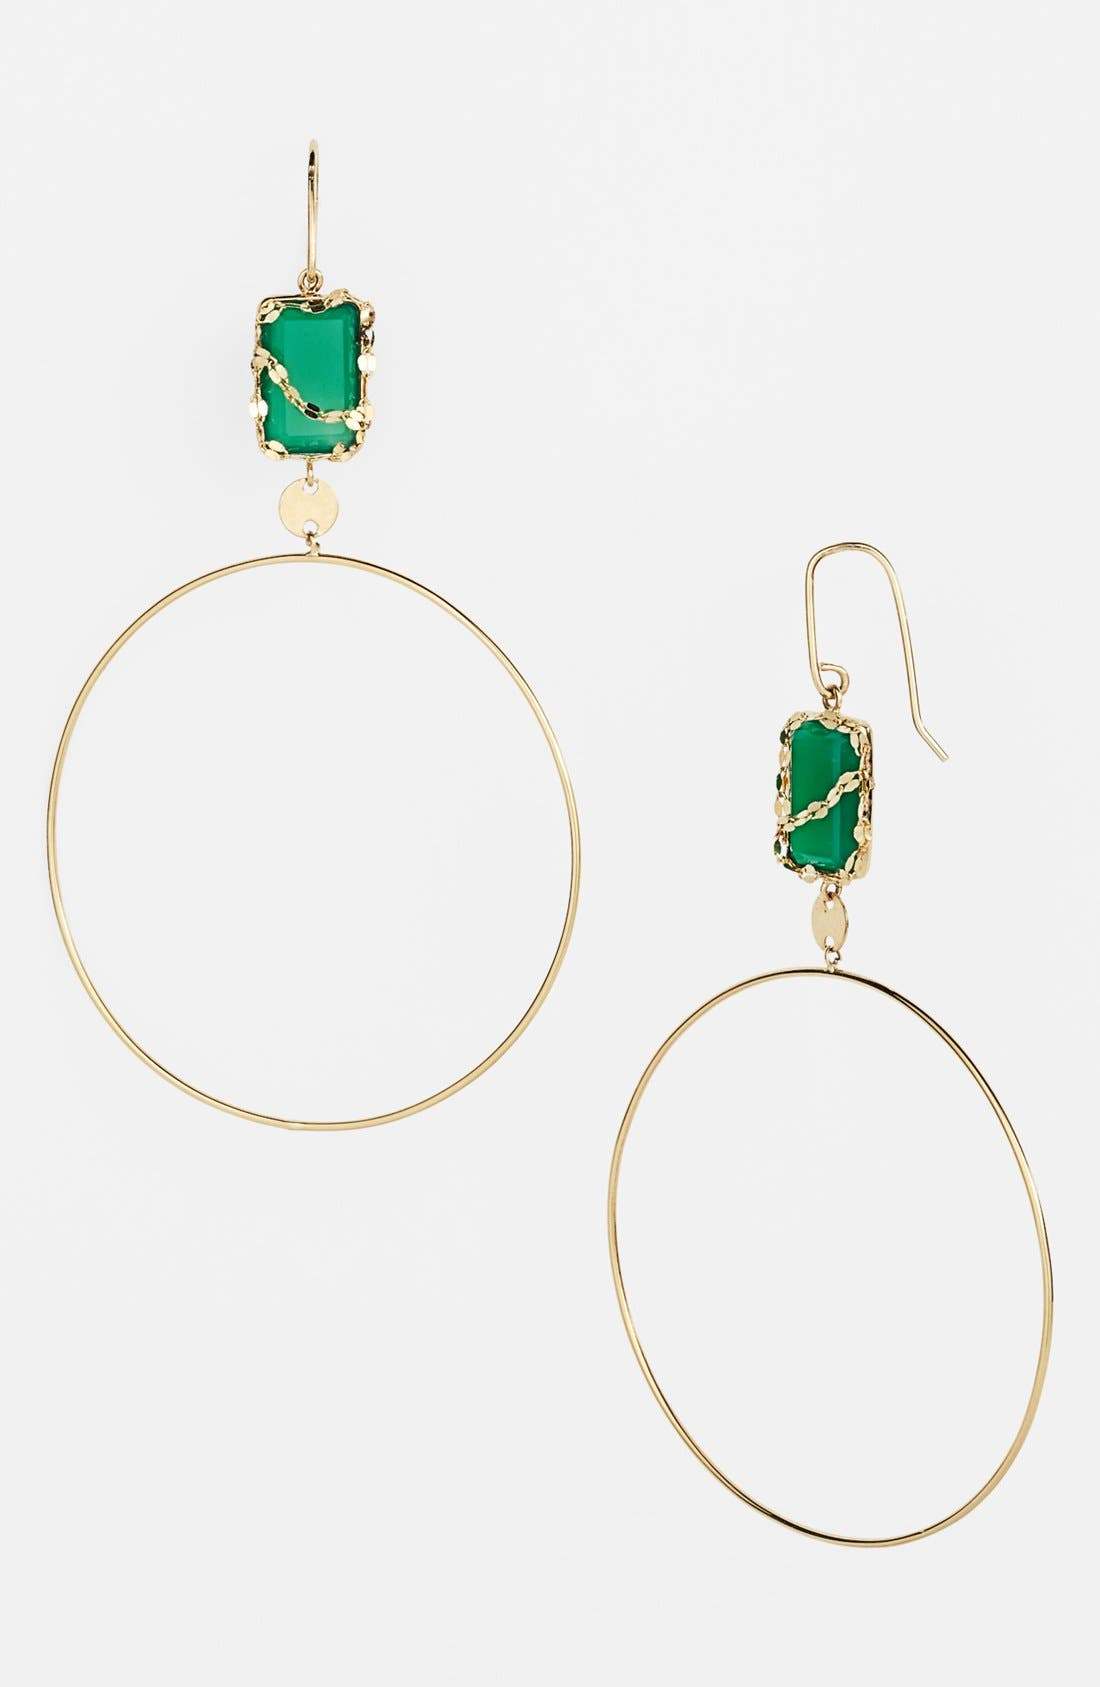 Alternate Image 1 Selected - Lana Jewelry 'Spellbound - Small Glow' Dangle Hoop Earrings (Nordstrom Exclusive)